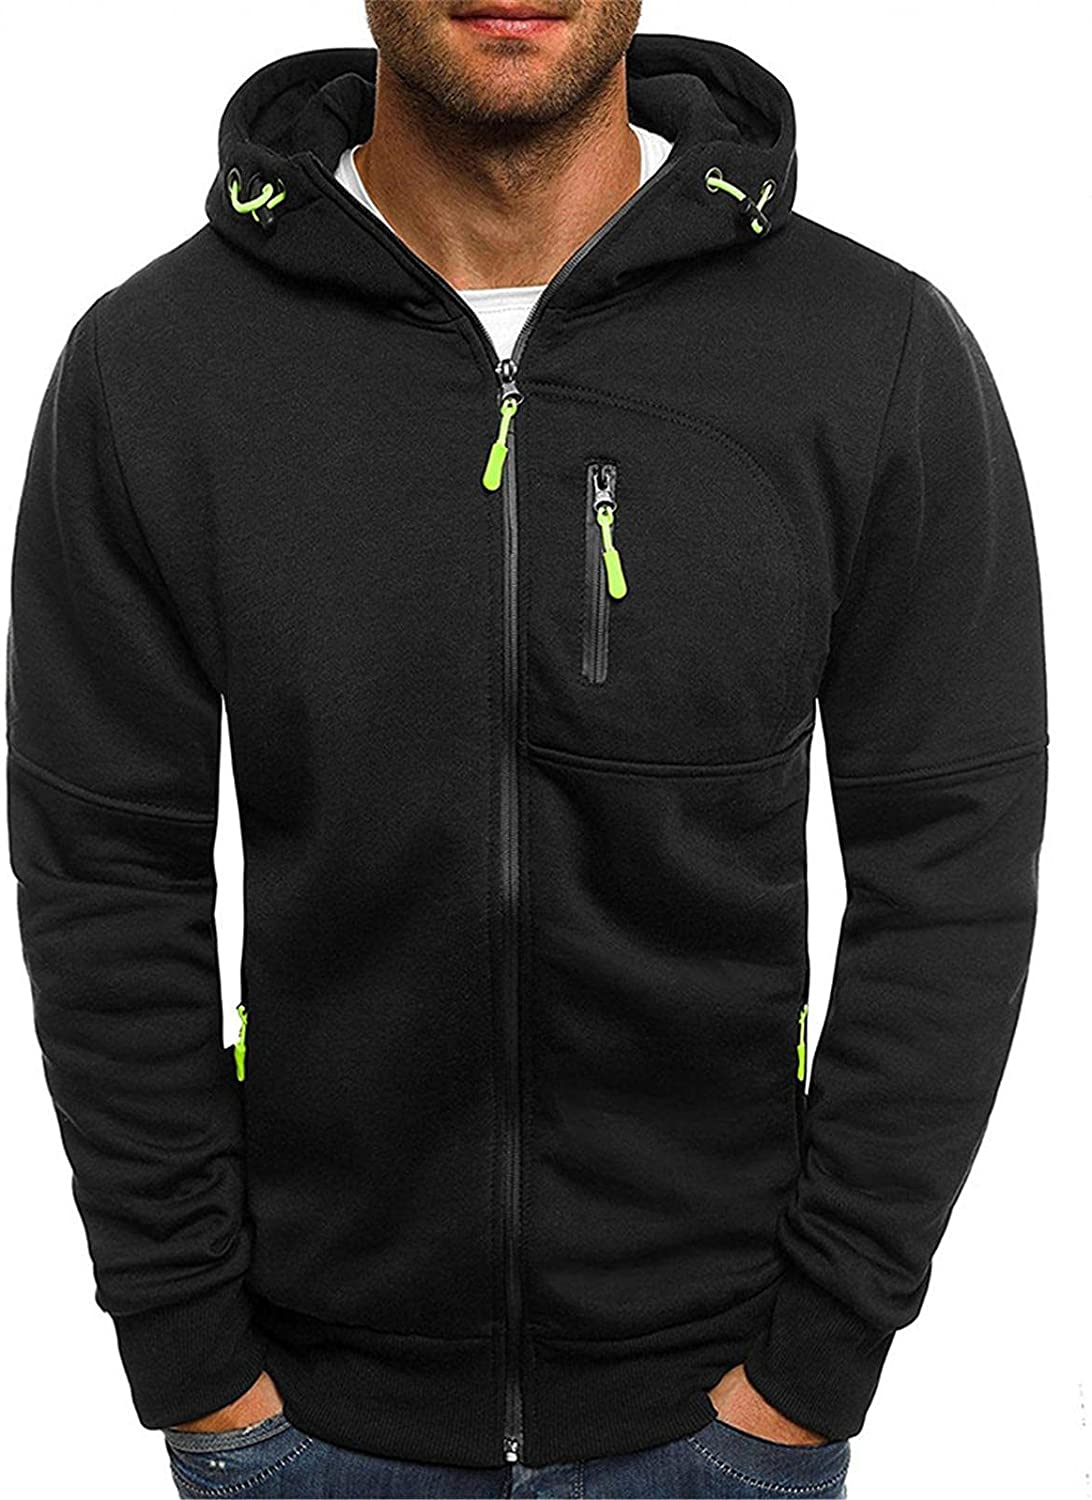 Aayomet Hoodies Sweatshirts for Men Fashion Solid Tops Zipper Long Sleeve Workout Hooded Pullover Blouses Coat with Pockets